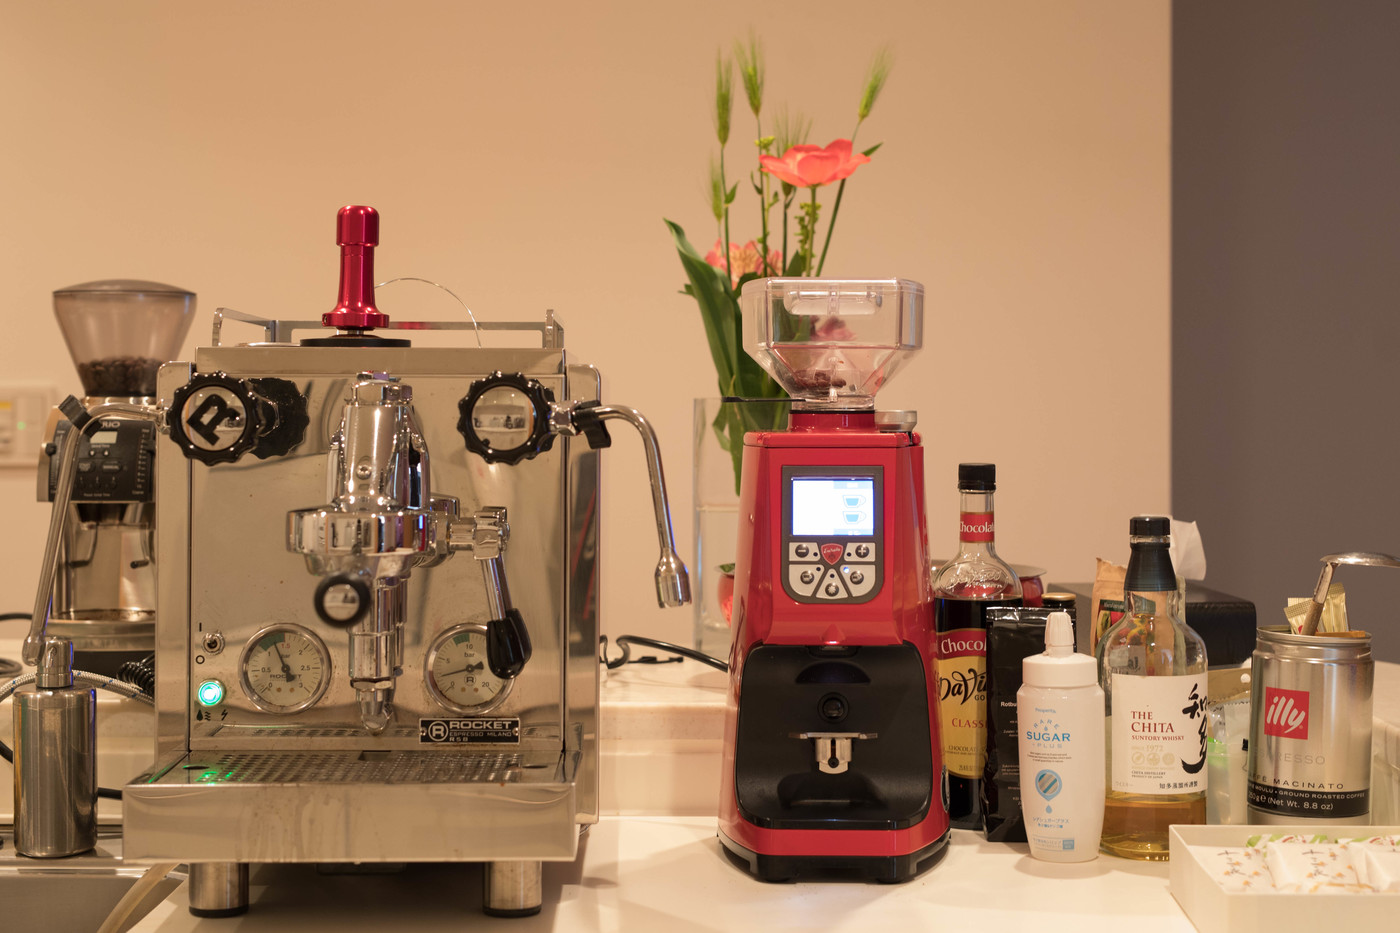 The espresso machine and grinders